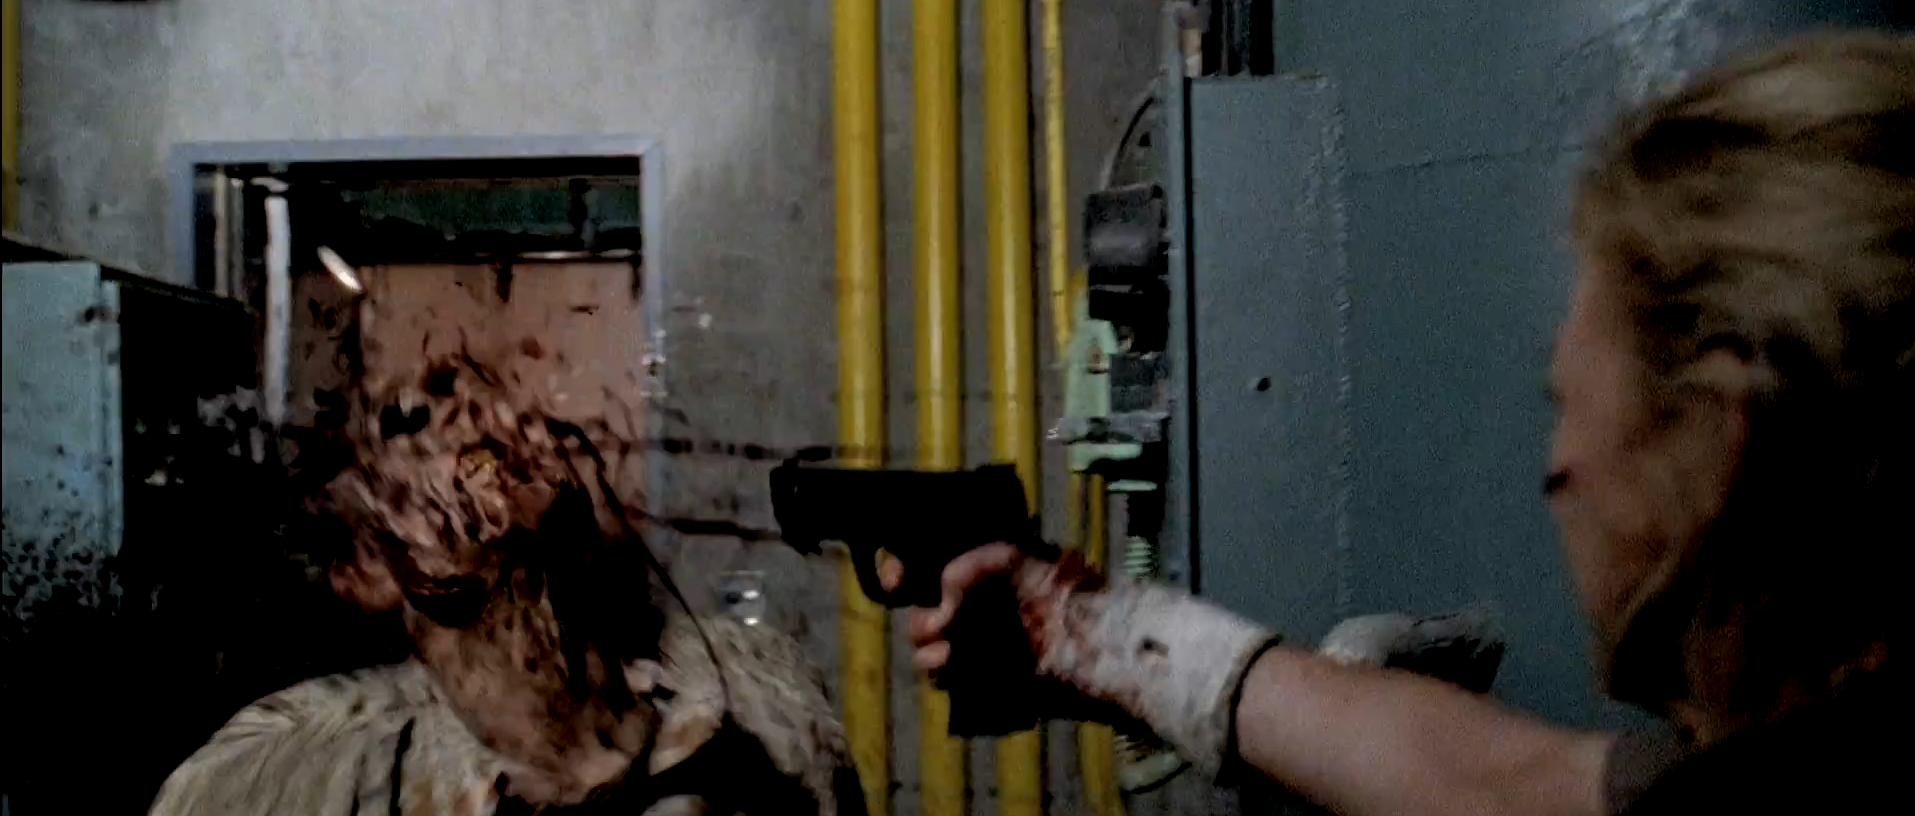 #TheWalkingDeadSeason5Trailer Beth Starts To Defend Herself Using What Looks Like The Officer's Gun